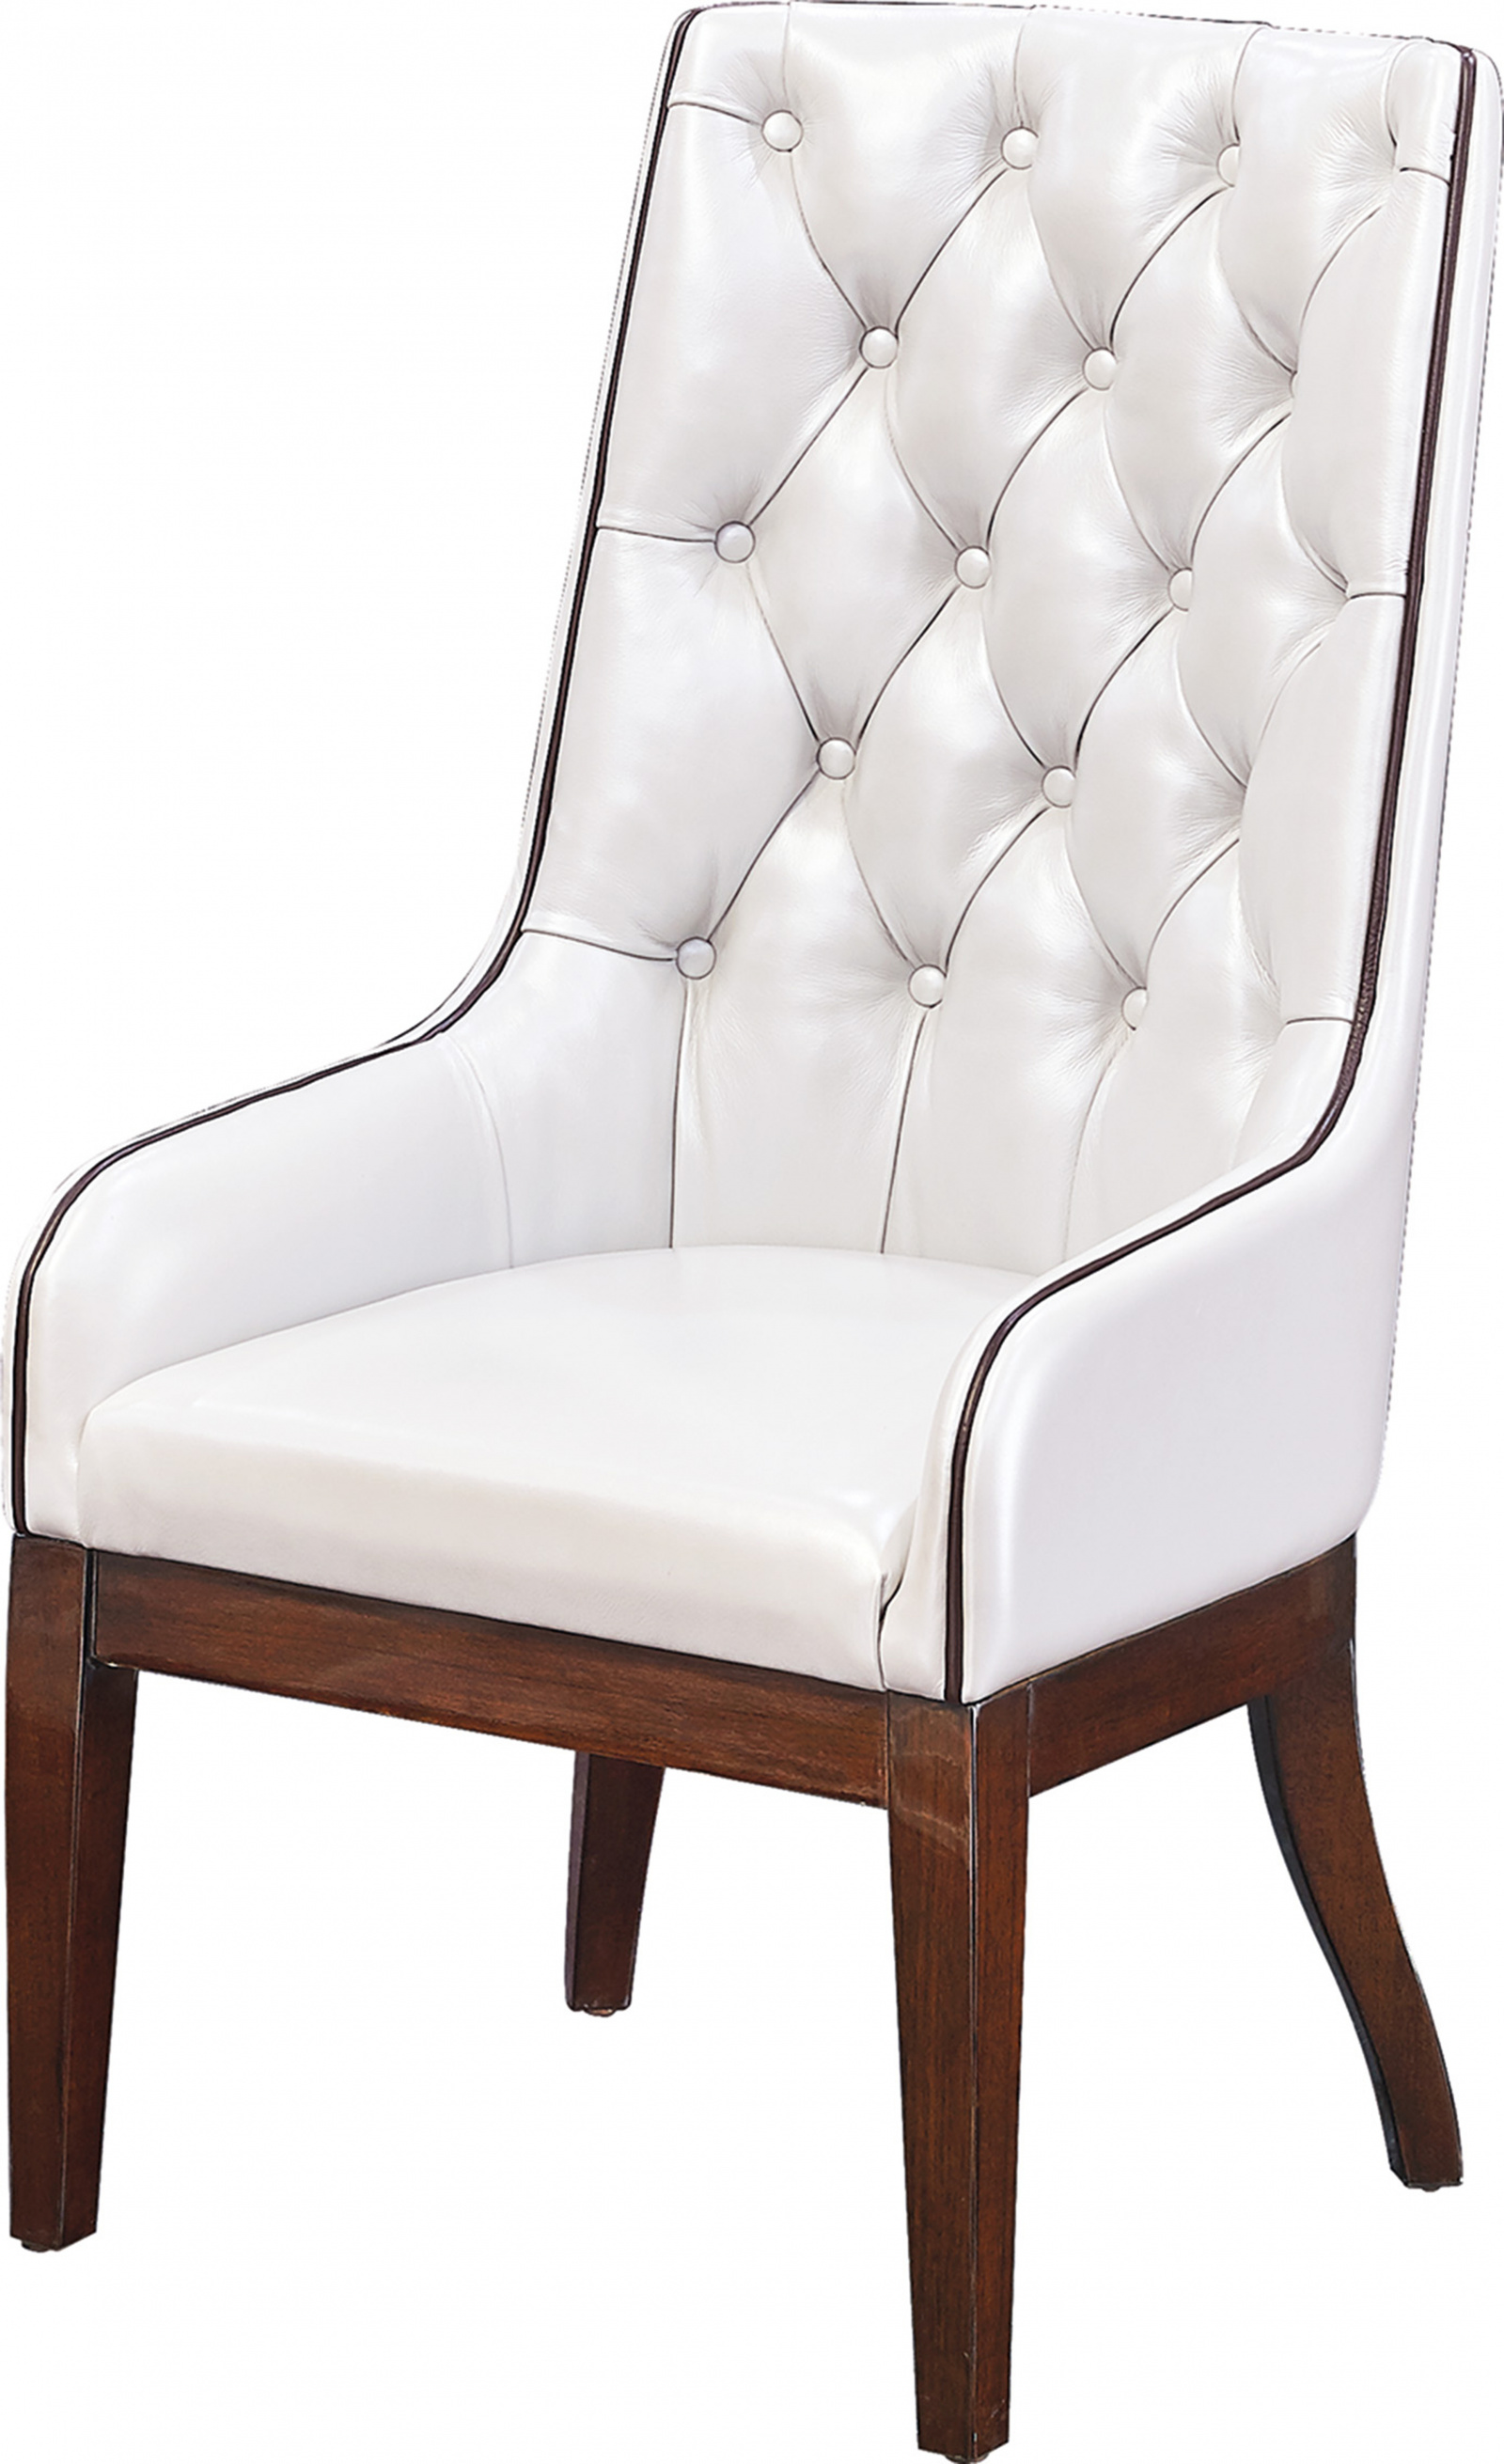 Дизайнерский стул 912 Sheffield Writing Chair BREEZE DECORATION